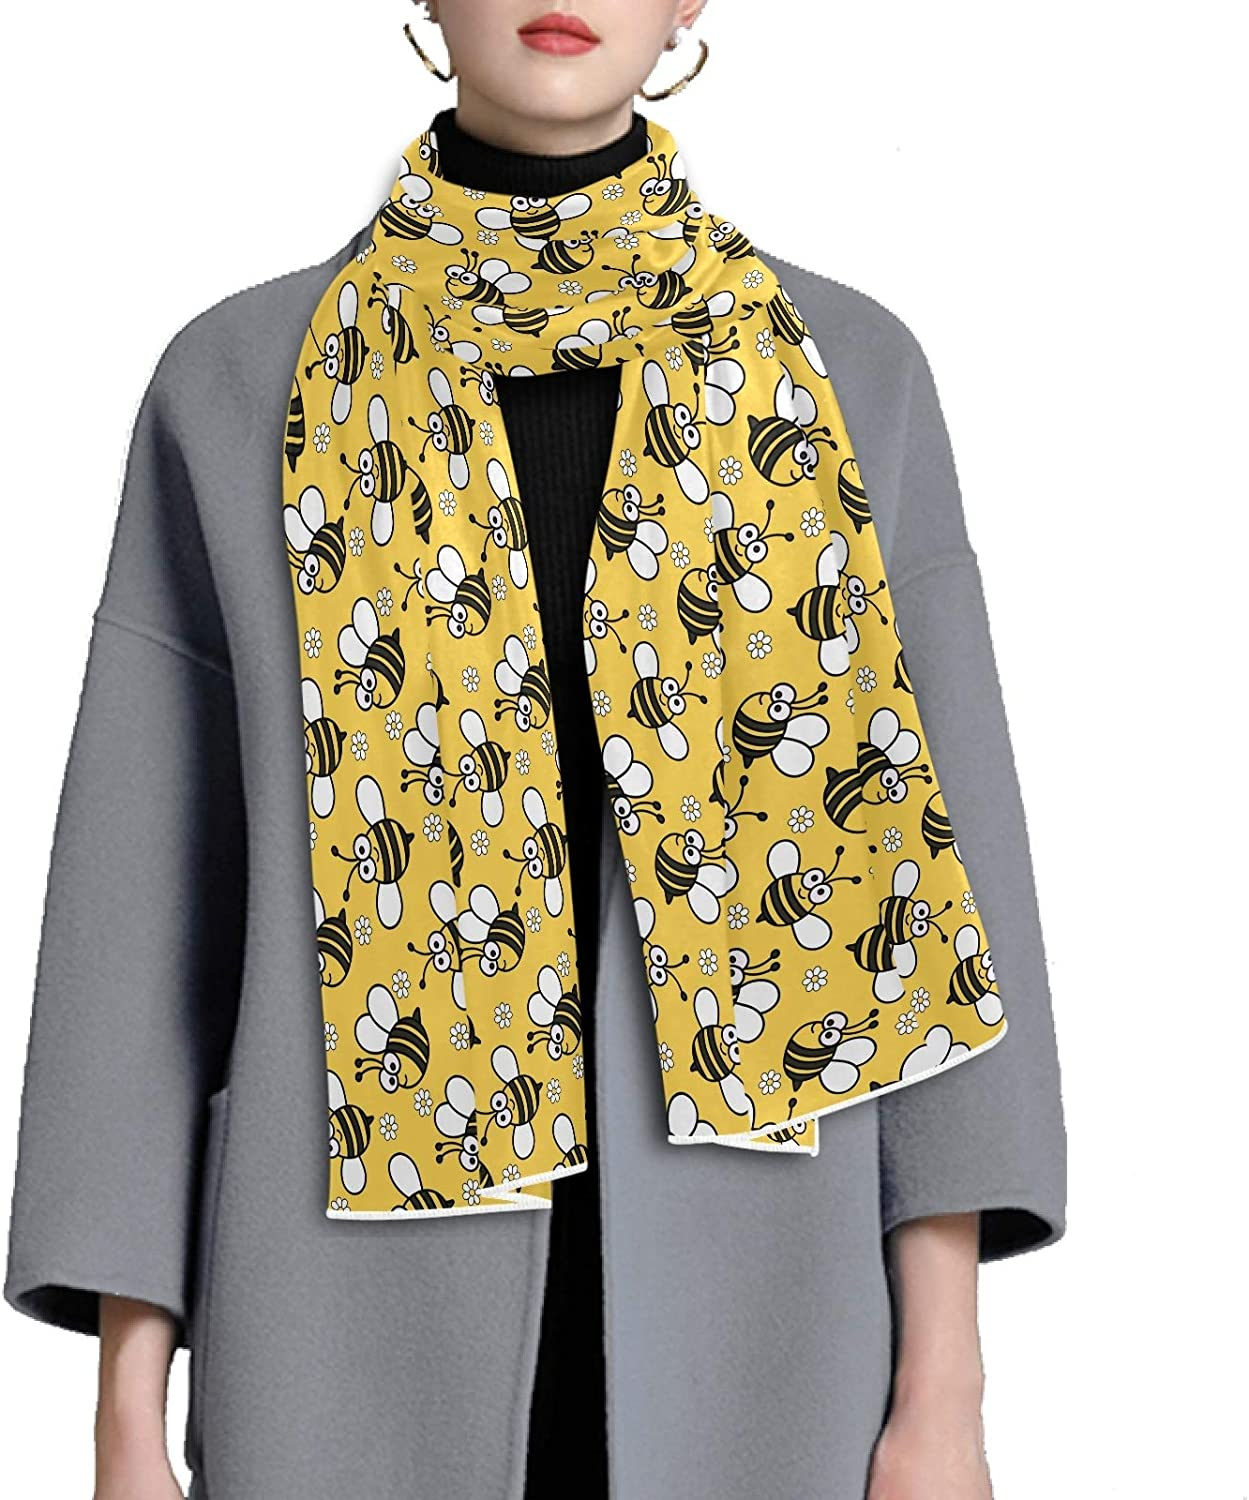 Scarf for Women and Men Cute Baby Bee Blanket Shawl Scarves Wraps Warm soft Winter Long Scarves Lightweight